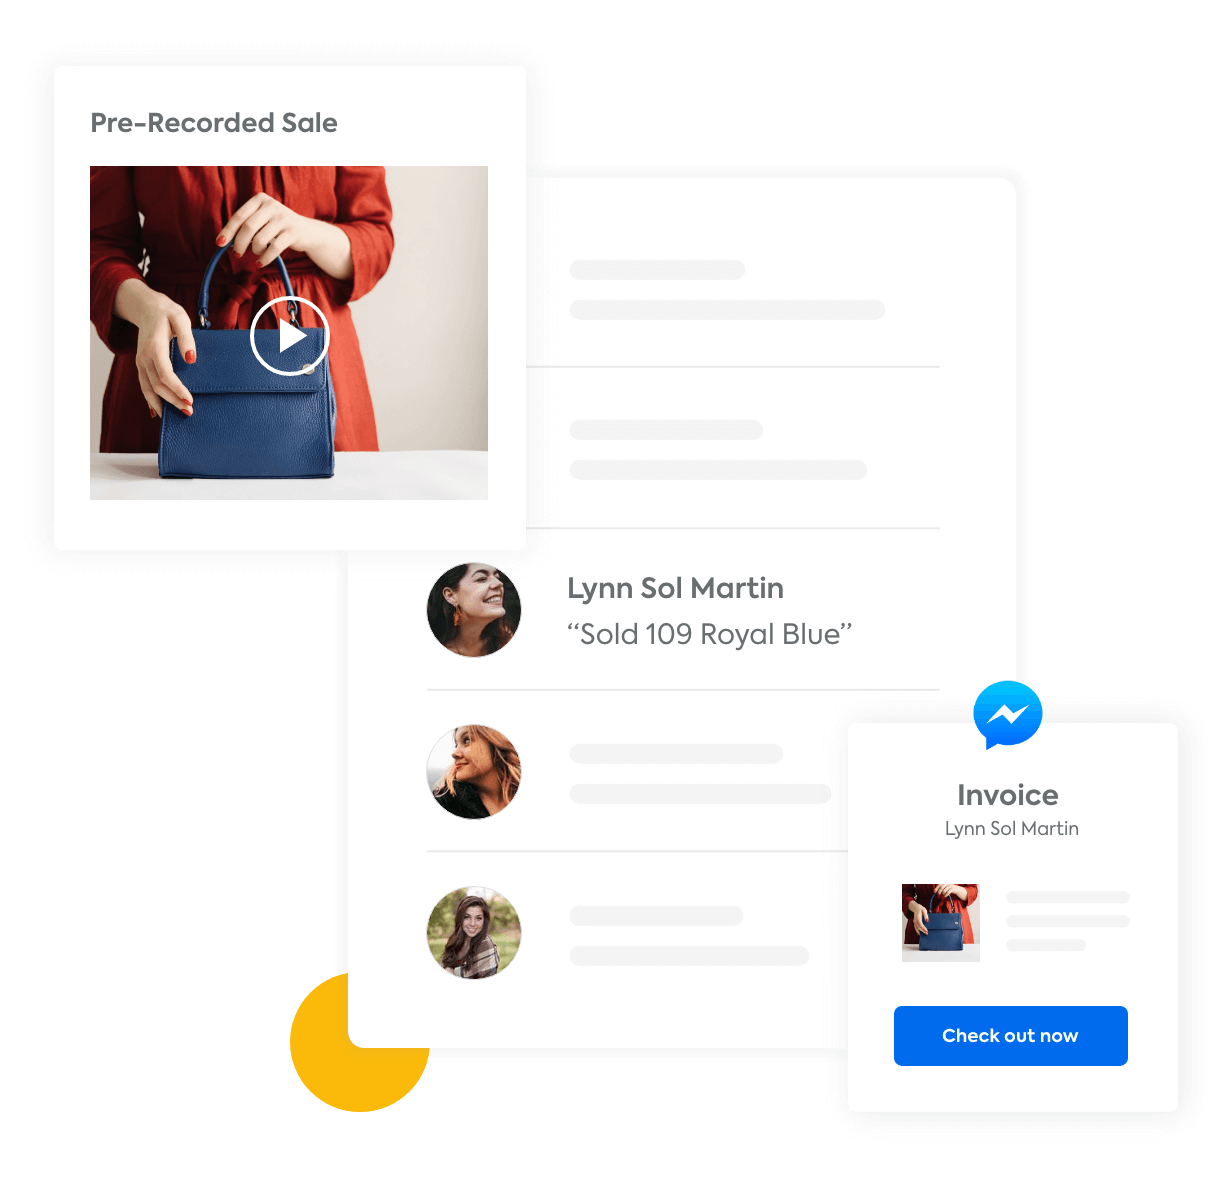 An example social post selling a purse with multiple comments and a Facebook Messenger message with a link to check out